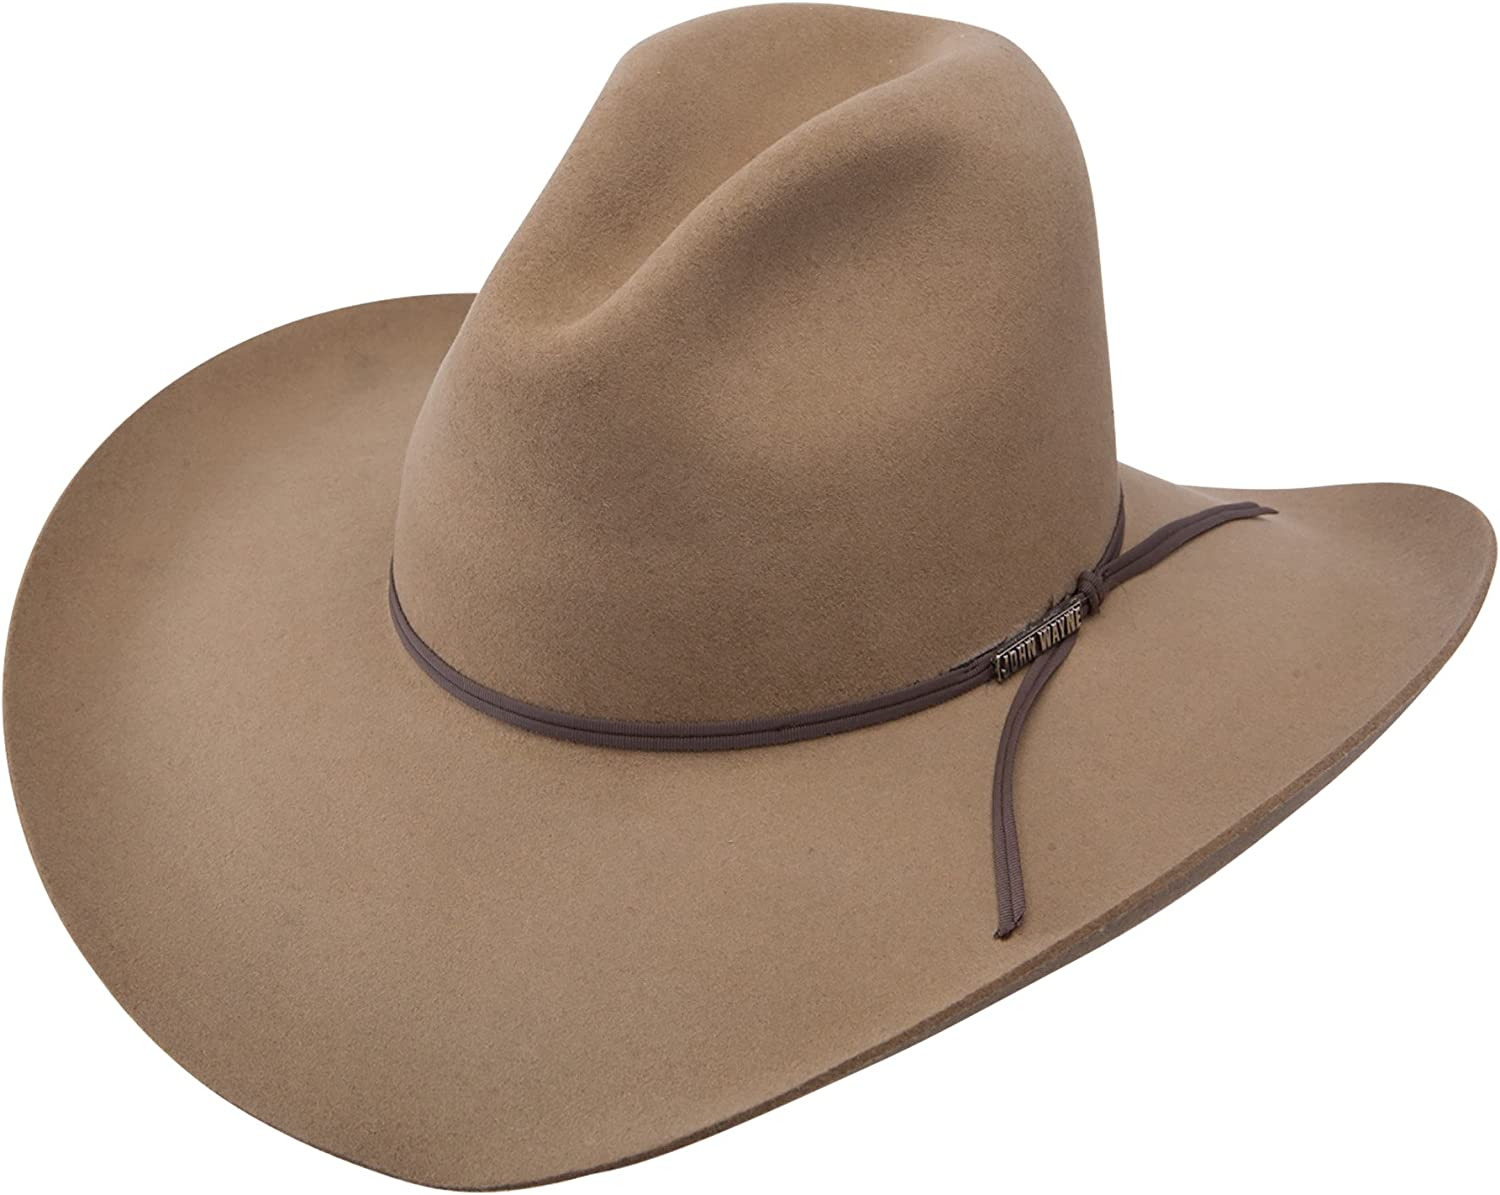 Stetson John Super popular specialty store Wayne Peacemaker - Wool Cowboy Hat 4X Opening large release sale